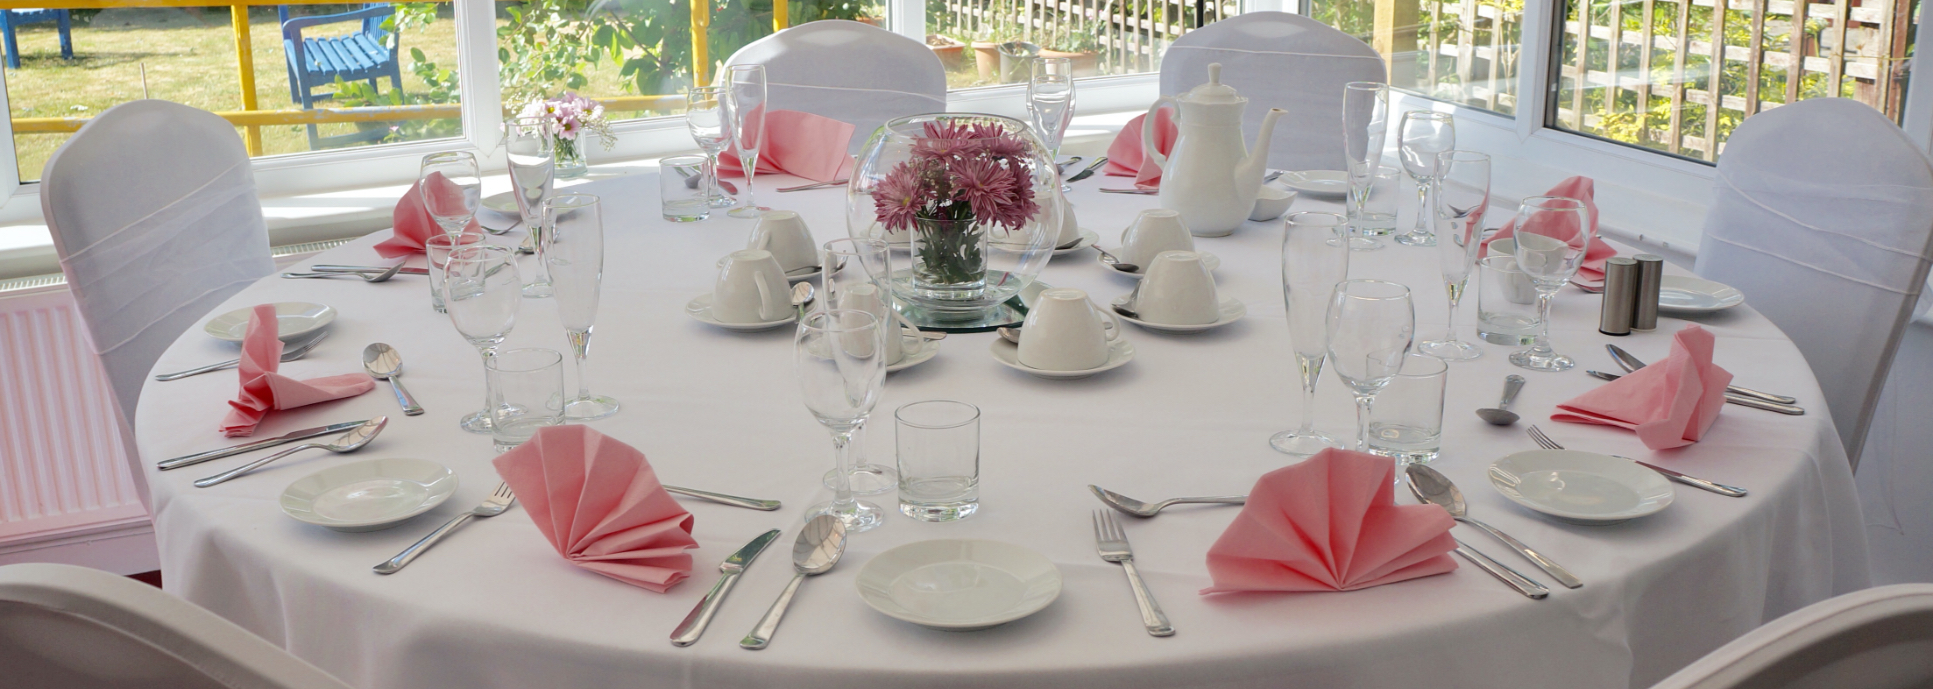 http://A%20close-up%20of%20an%20eight%20place%20setting%20for%20afternoon%20tea%20with%20white%20linen%20and%20pink%20napkins.%20The%20chairs%20are%20dressed%20with%20white%20covers%20and%20large%20organza%20bows.%20The%20pastel%20coloured%20bunting%20frames%20the%20window%20showing%20the%20sensory%20garden%20on%20a%20sunny%20day.